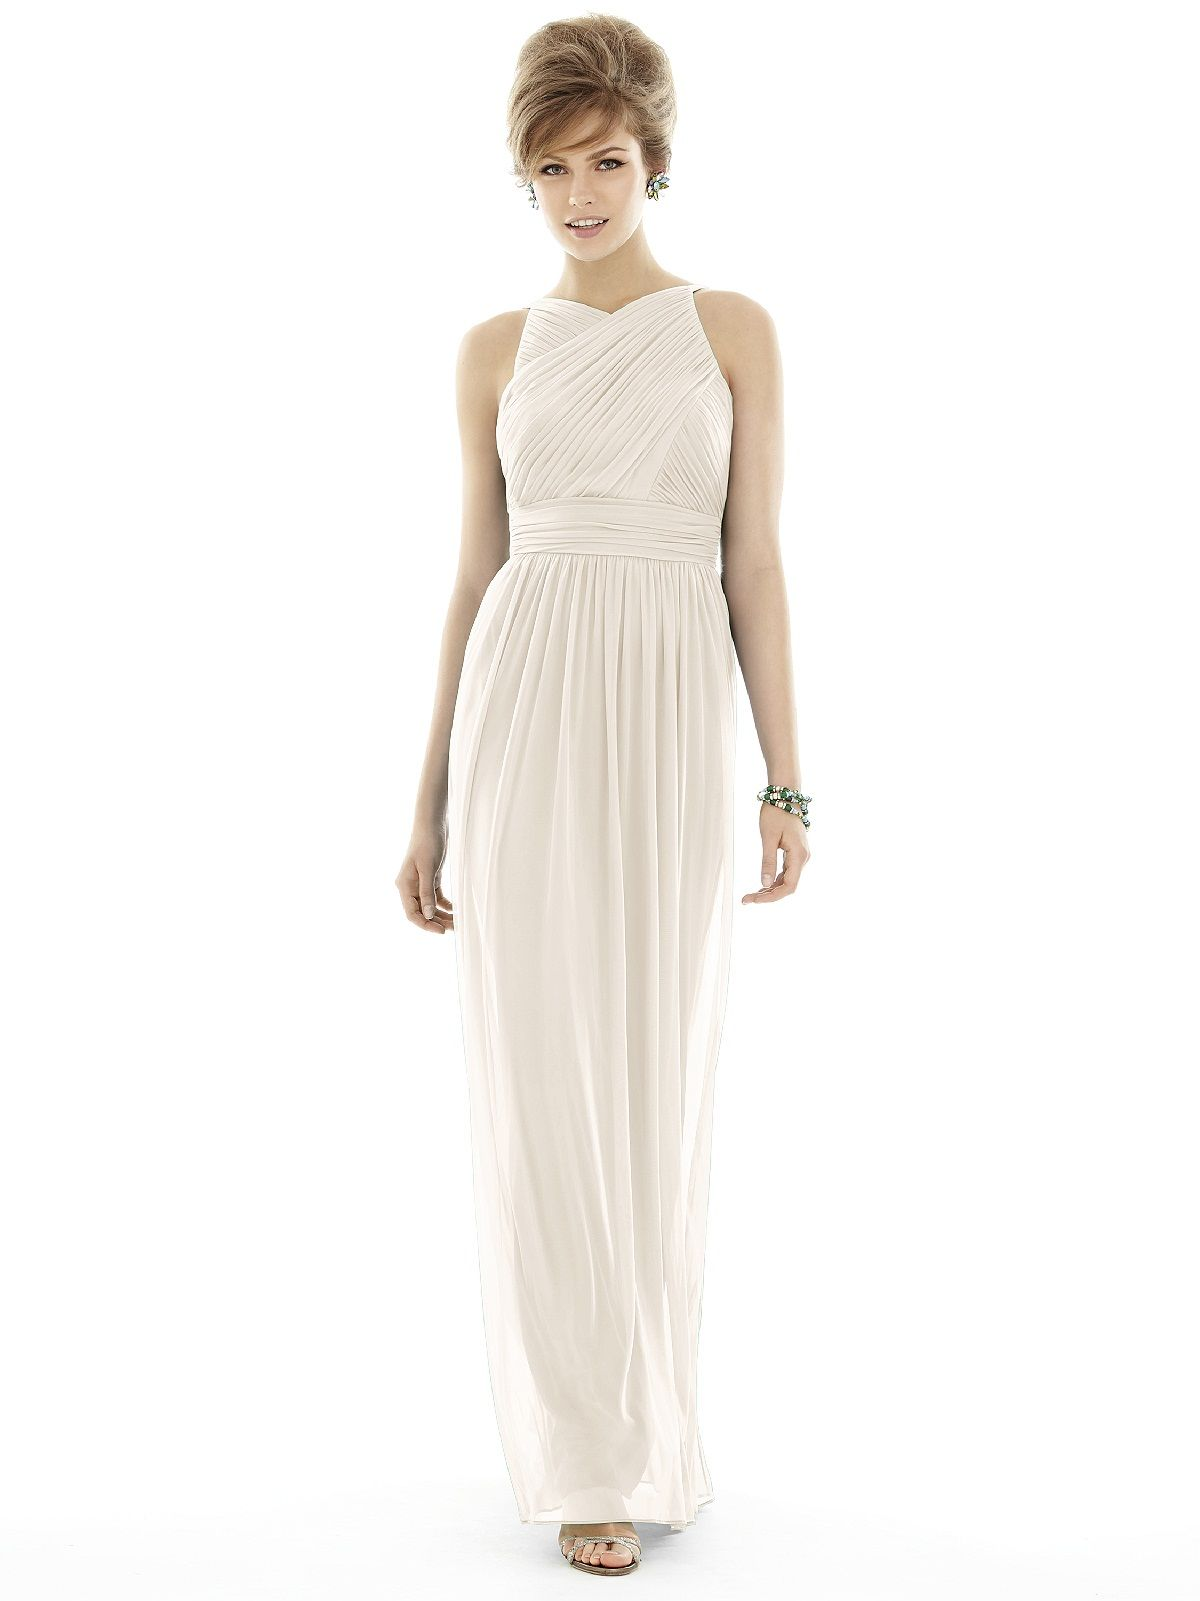 Alfred sung d692 bridesmaid dress weddington way white out shop alfred sung final sale sample sale in chiffon knit at weddington way find the perfect made to order bridesmaid dresses for your bridal party in your ombrellifo Gallery